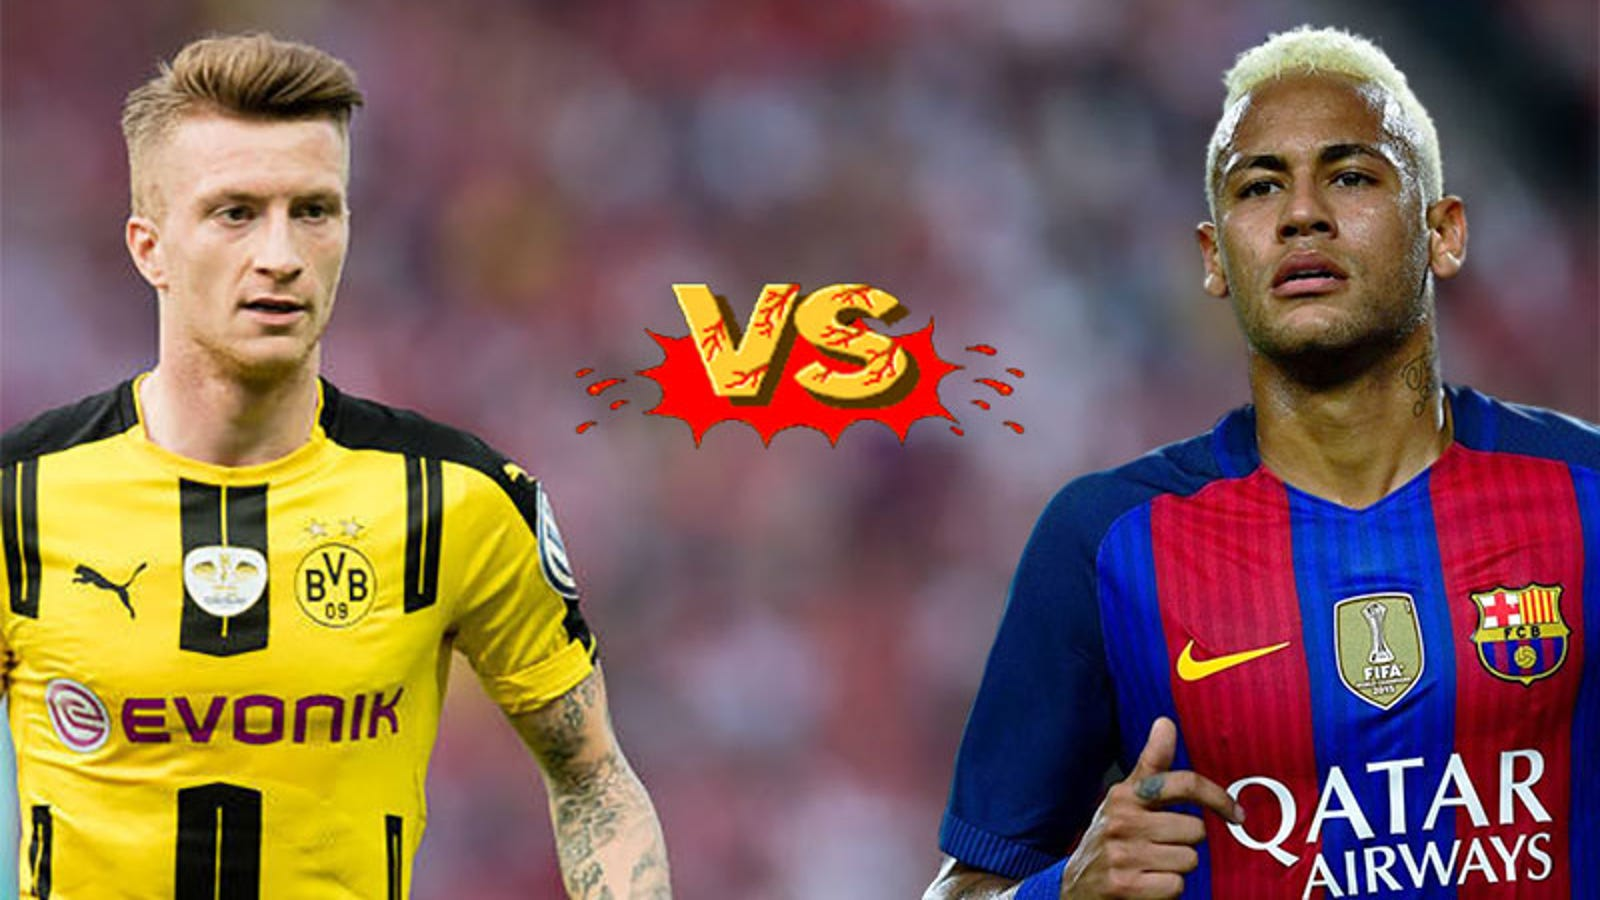 Fifa 17 Vs Pes 2017 Which Is Better Sony Ps4 Pro Evolution Soccer